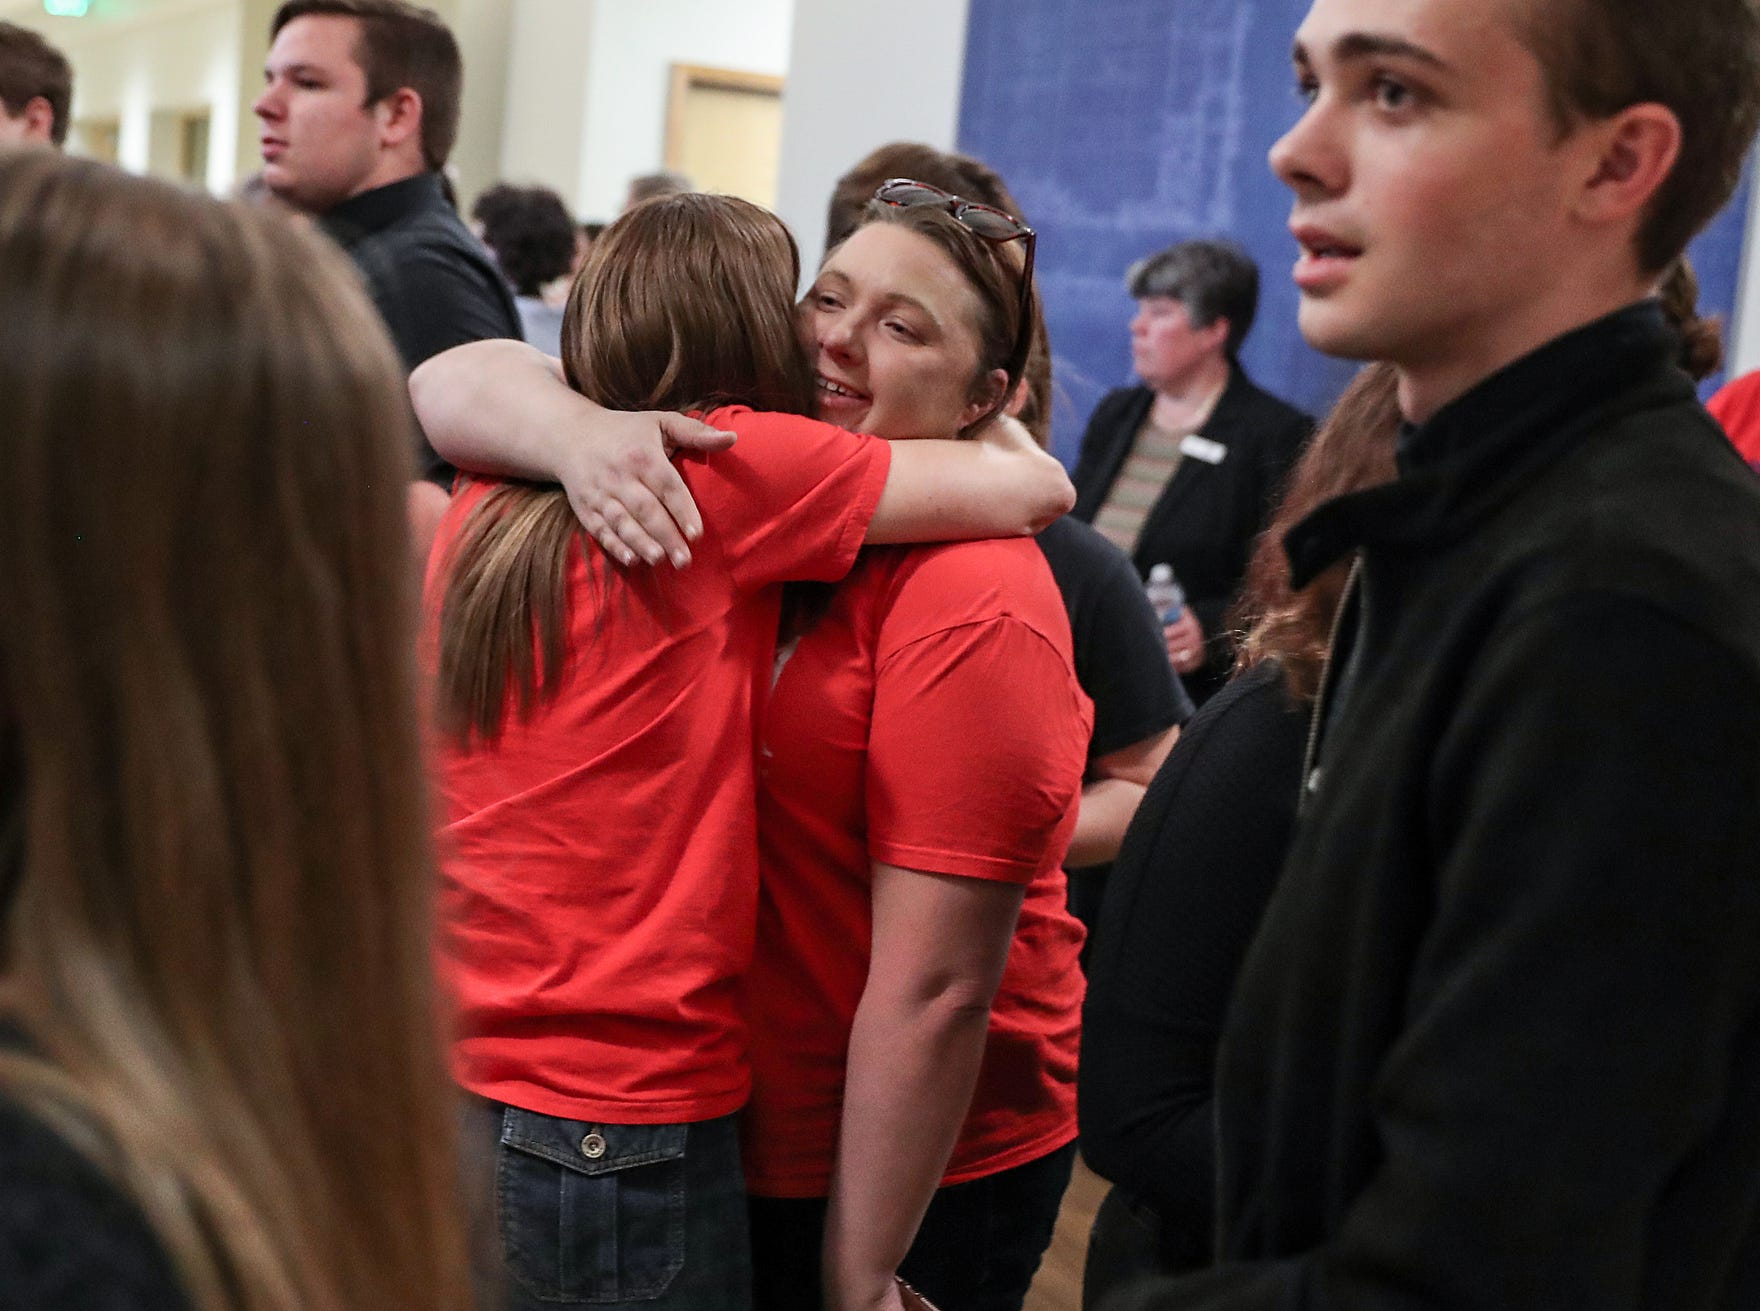 Students and other supporters celebrate the outcome of the Hamilton Southeastern Schools board meeting at Cumberland Road Elementary in Fishers, Ind., Wednesday, May 8, 2019. The board voted 5-2 to adopt an anti-discrimination policy including language specifically prohibiting discrimination and harassment based on gender identity and sexual orientation.